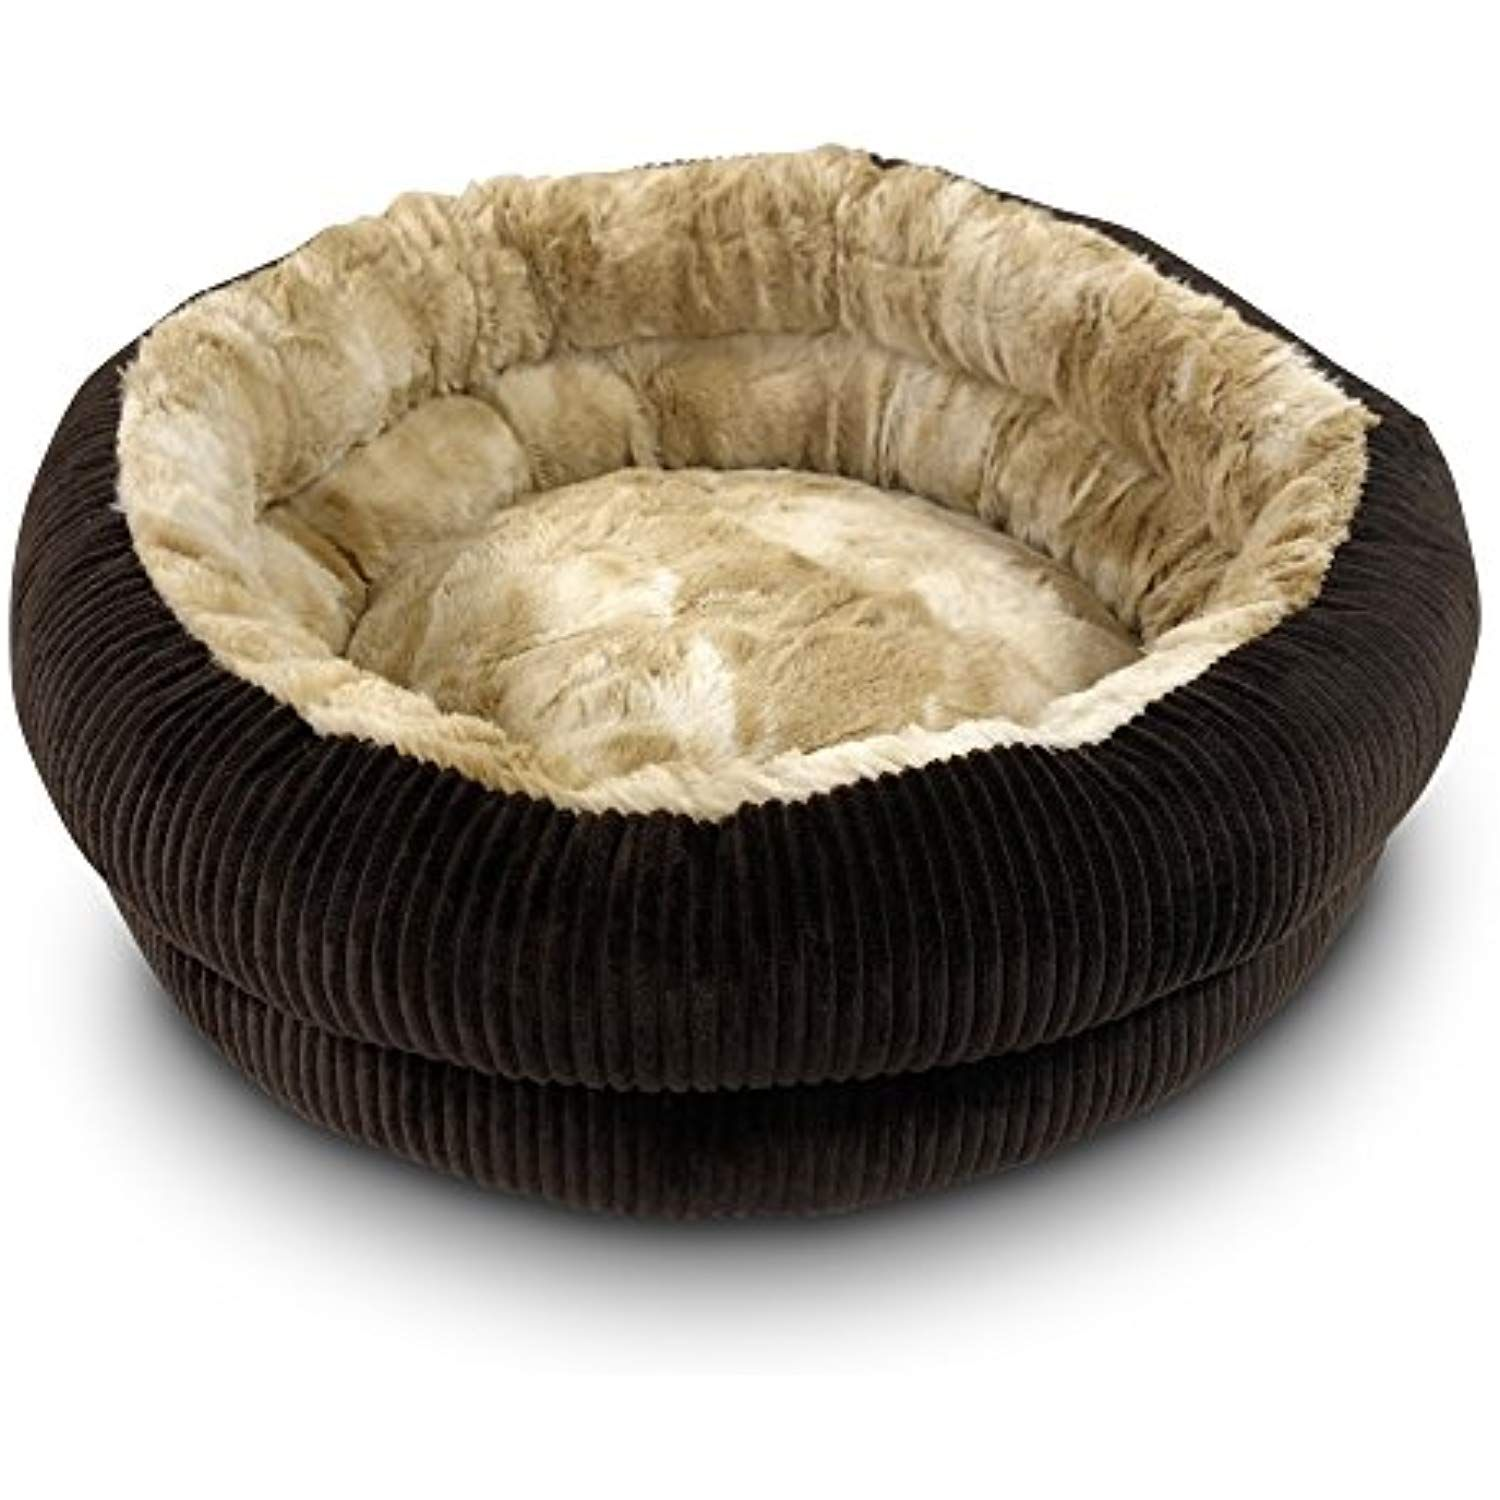 Pet Craft Supply Premier Hideout Plush Cat Bed >>> You can